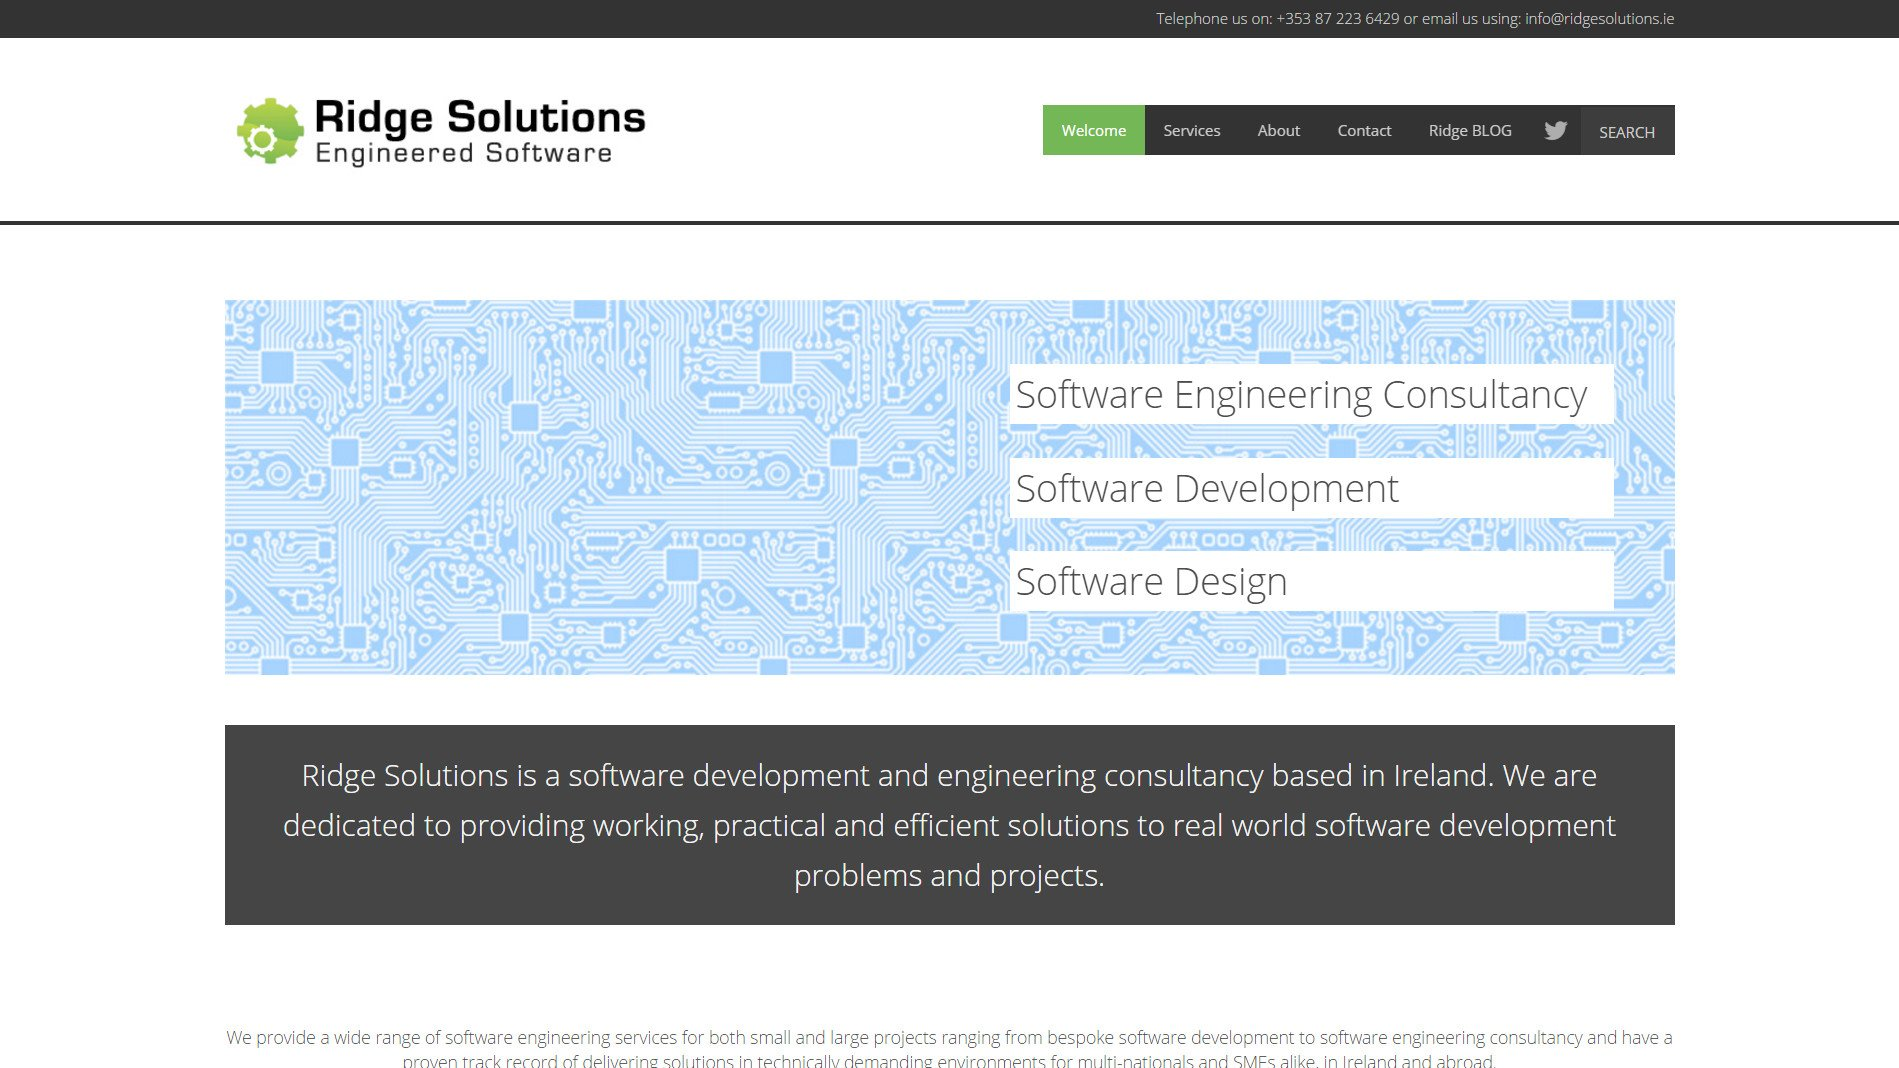 Website design for Ridge Solutions designed by Ridge Design Home Page visual used as featured image